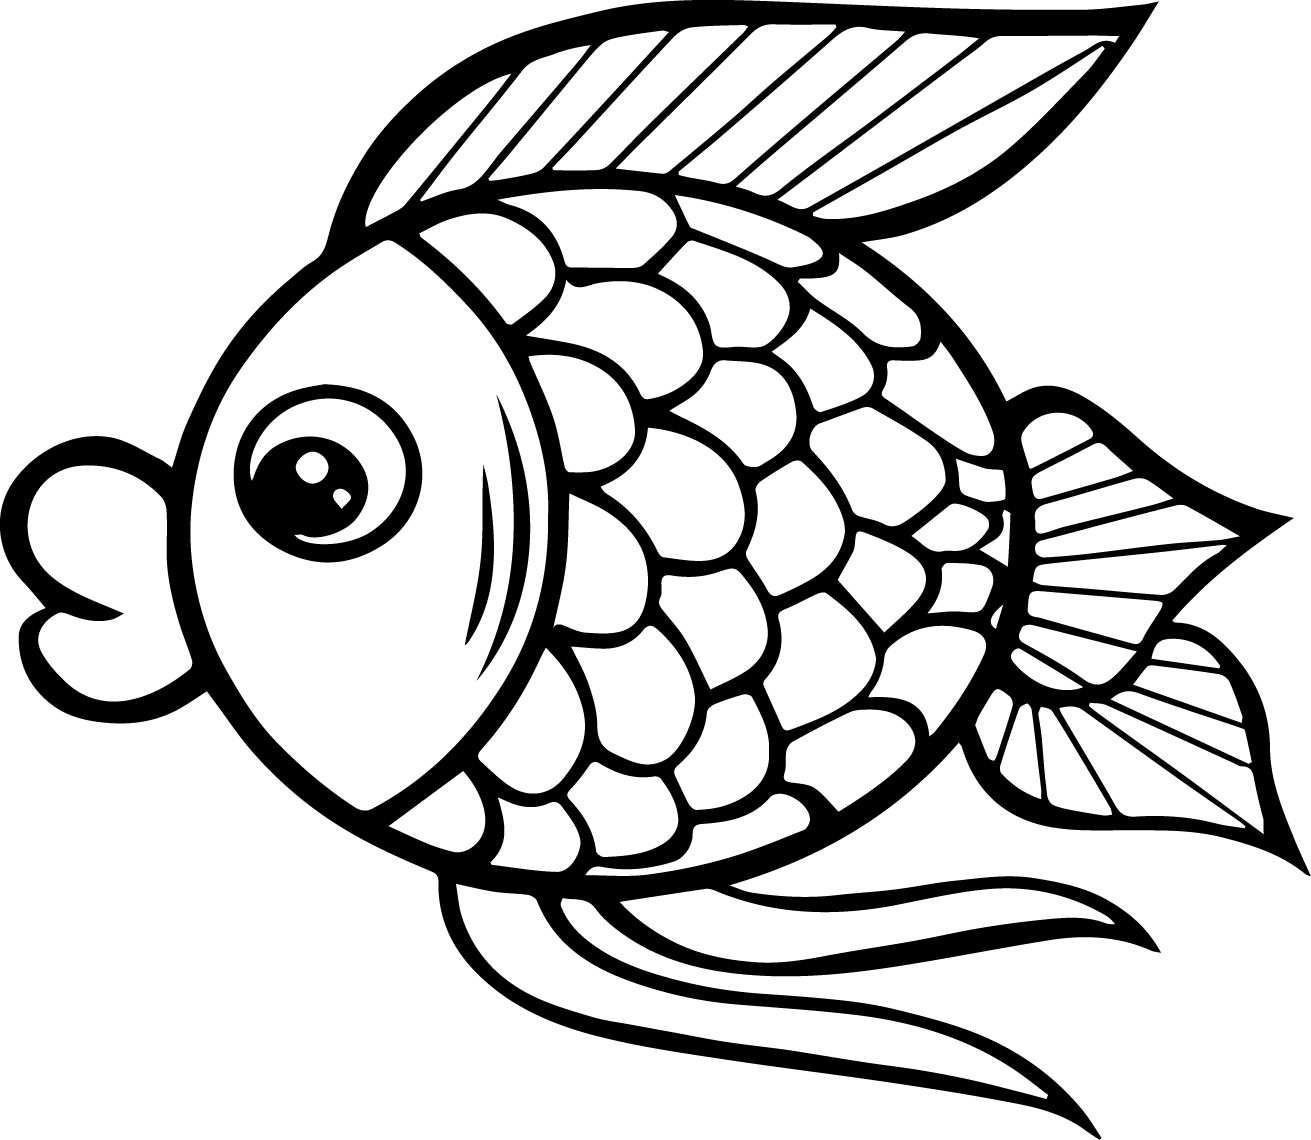 Uncategorized Cartoon Fish Coloring Pages big mouth cartoon fish coloring page sheet wecoloringpage sheet